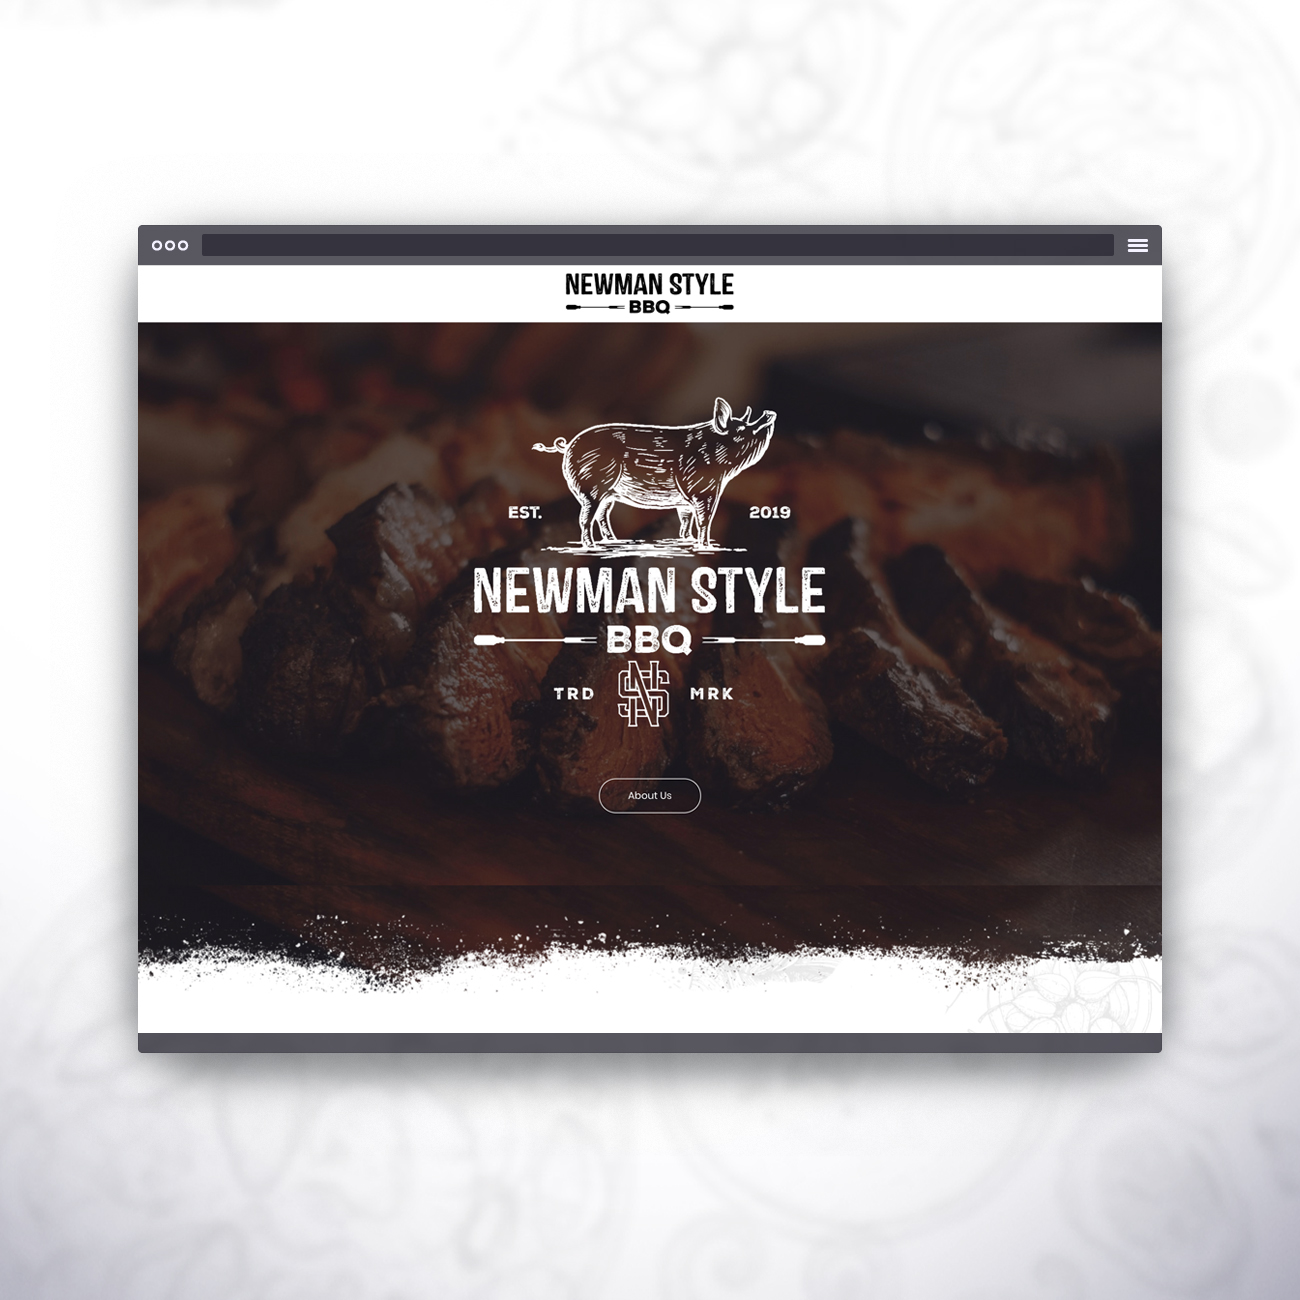 Browser Newman Style BBQ